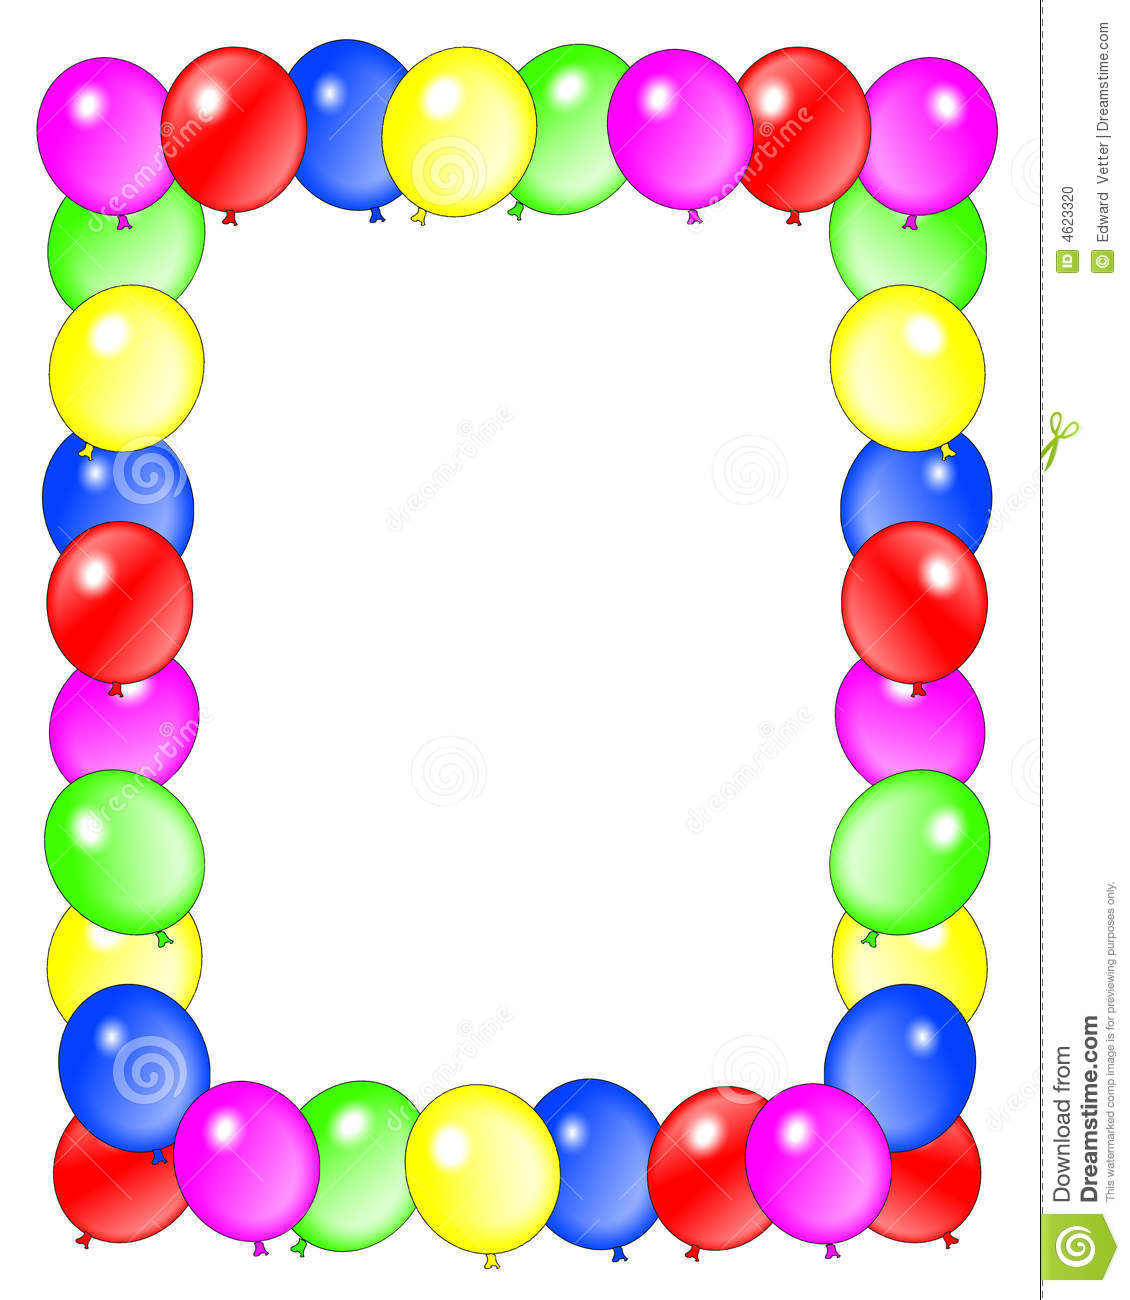 Microsoft Cliparts Balloons | Free download best Microsoft